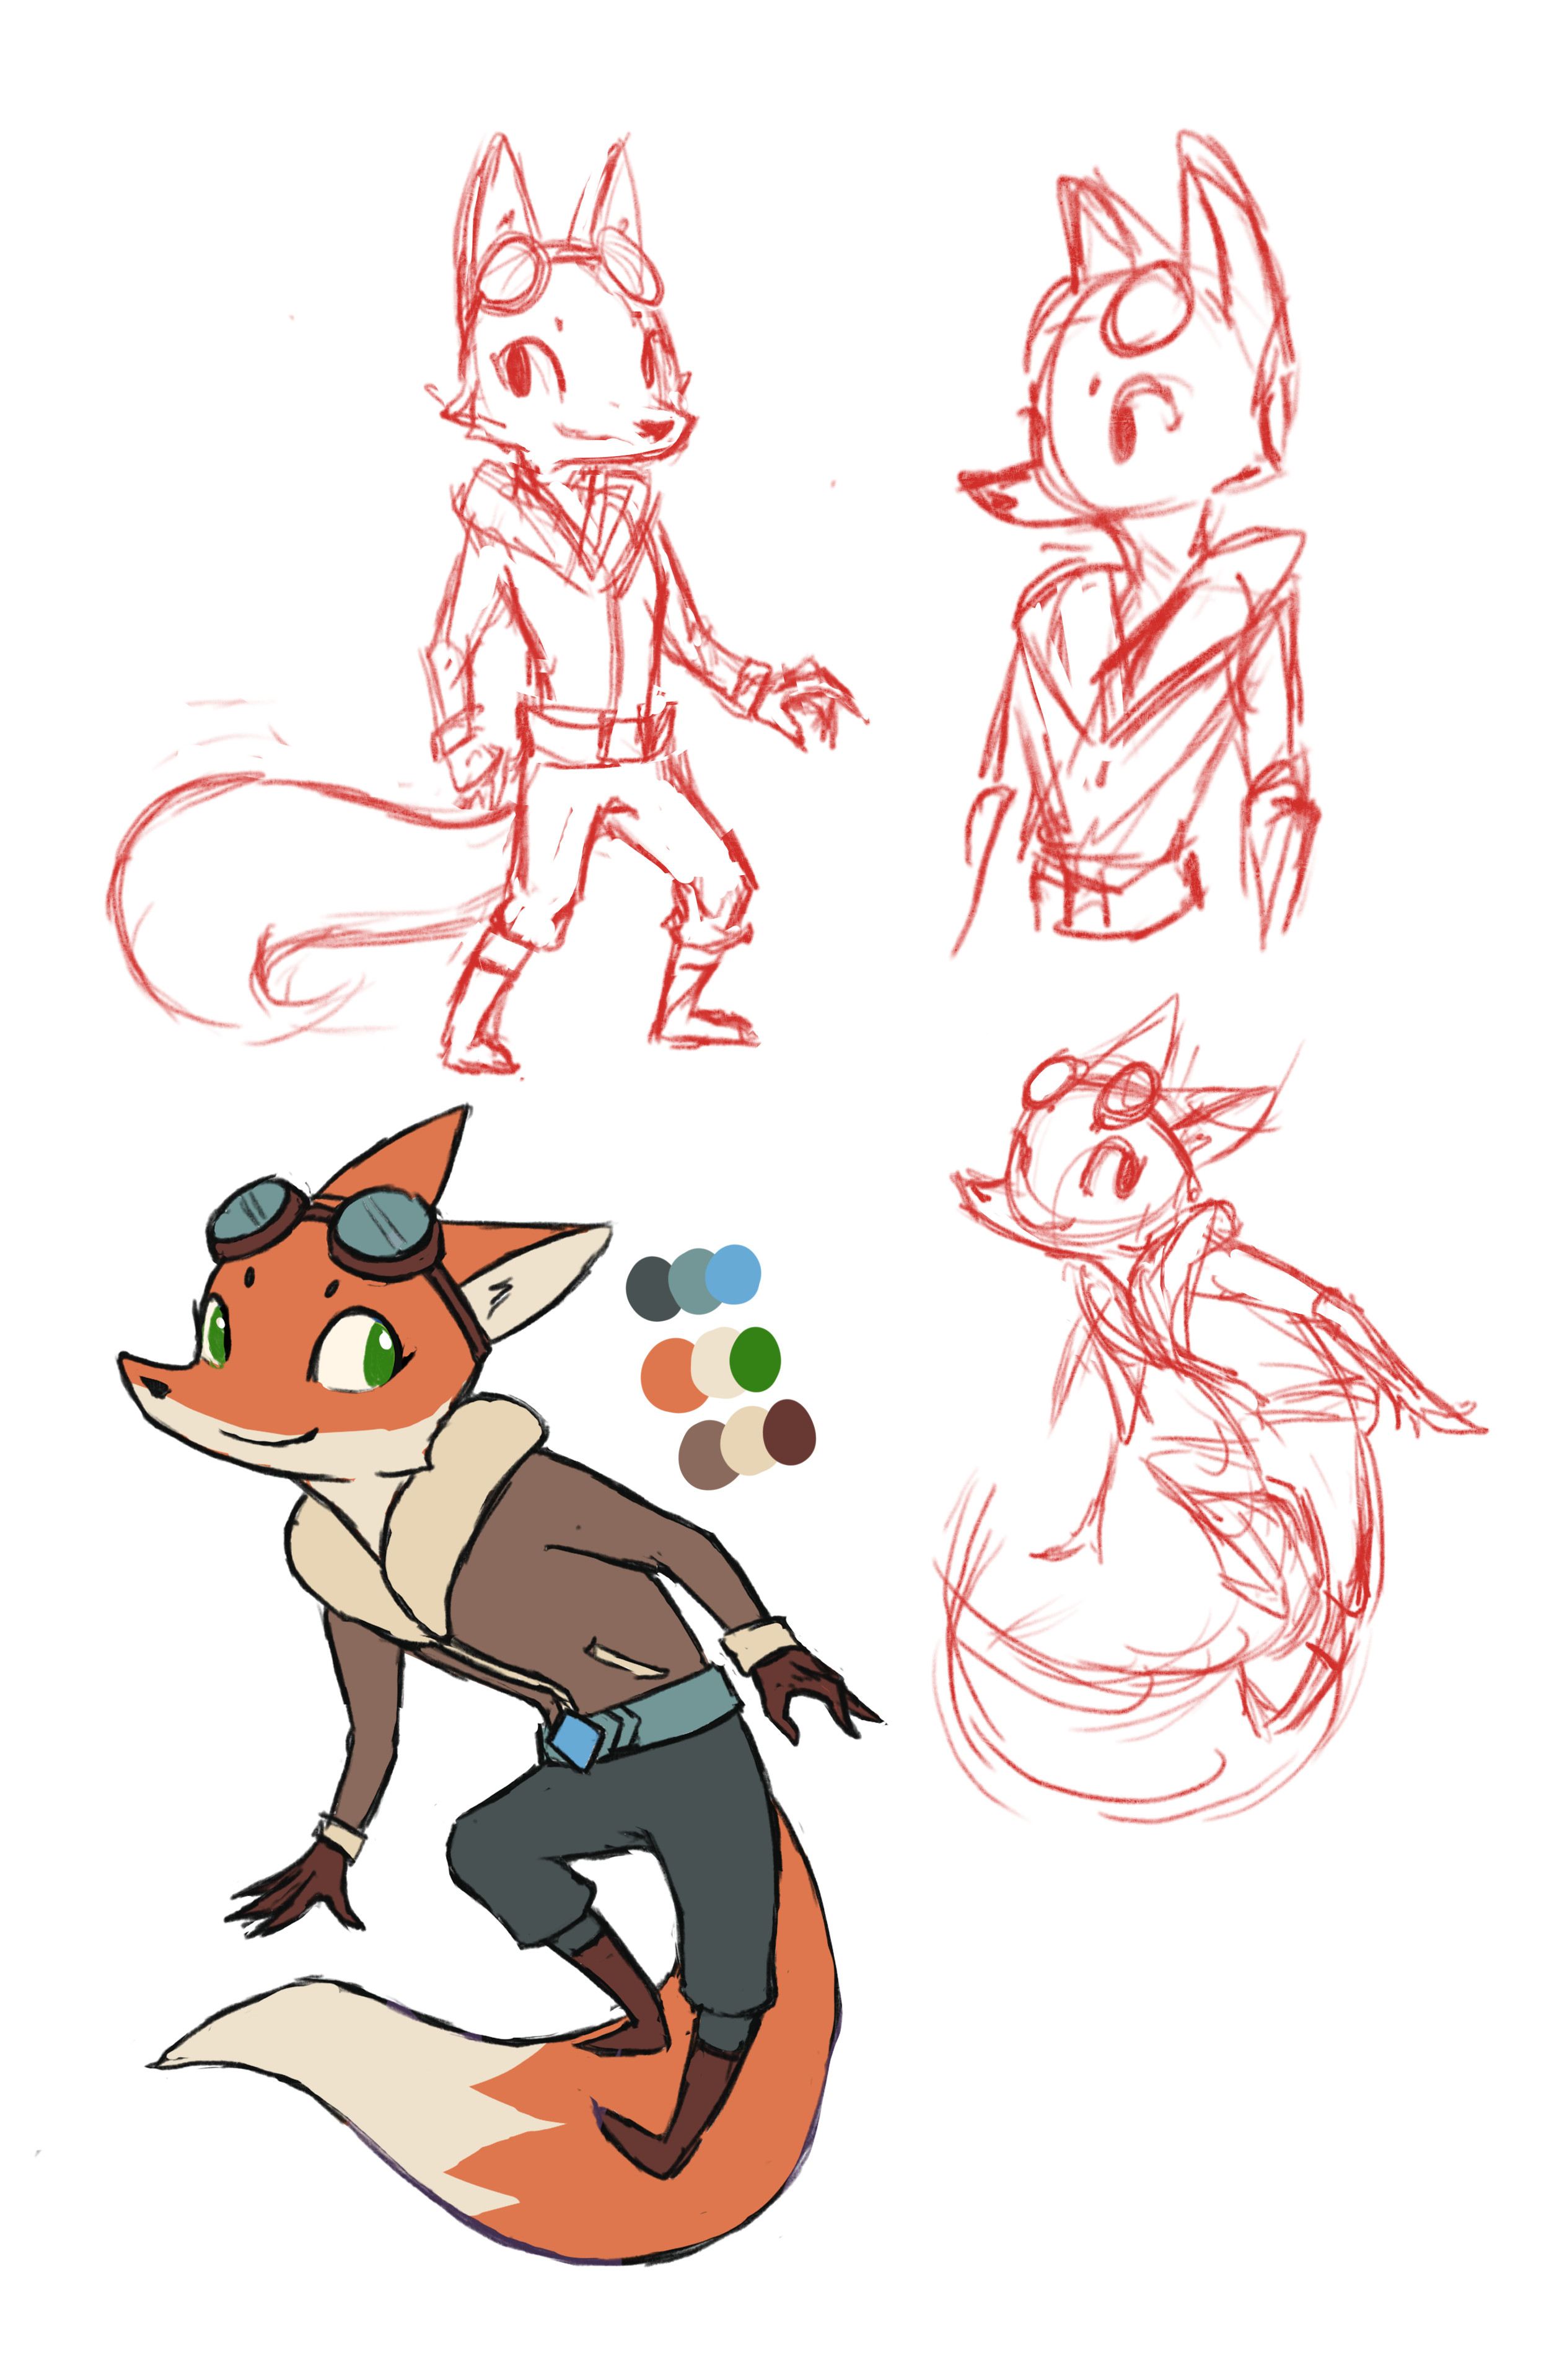 Concept Art for the fox character, Foxfire